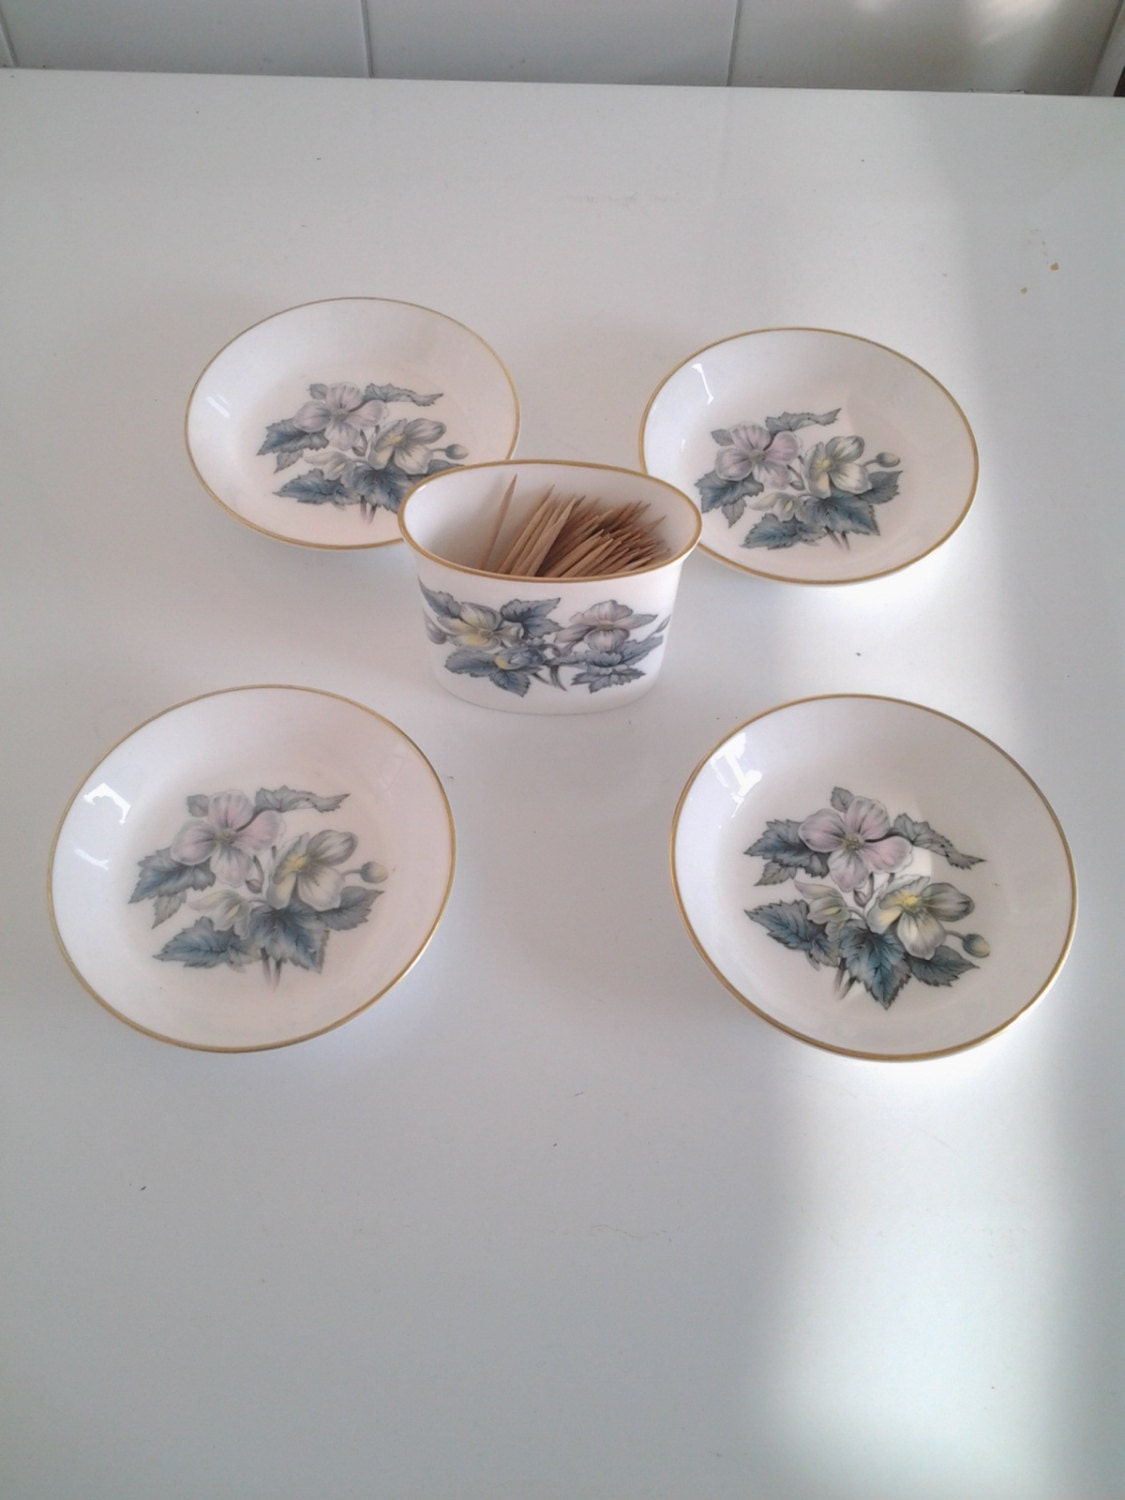 royal worcester pin dishes complete set england fine bone china haute juice. Black Bedroom Furniture Sets. Home Design Ideas